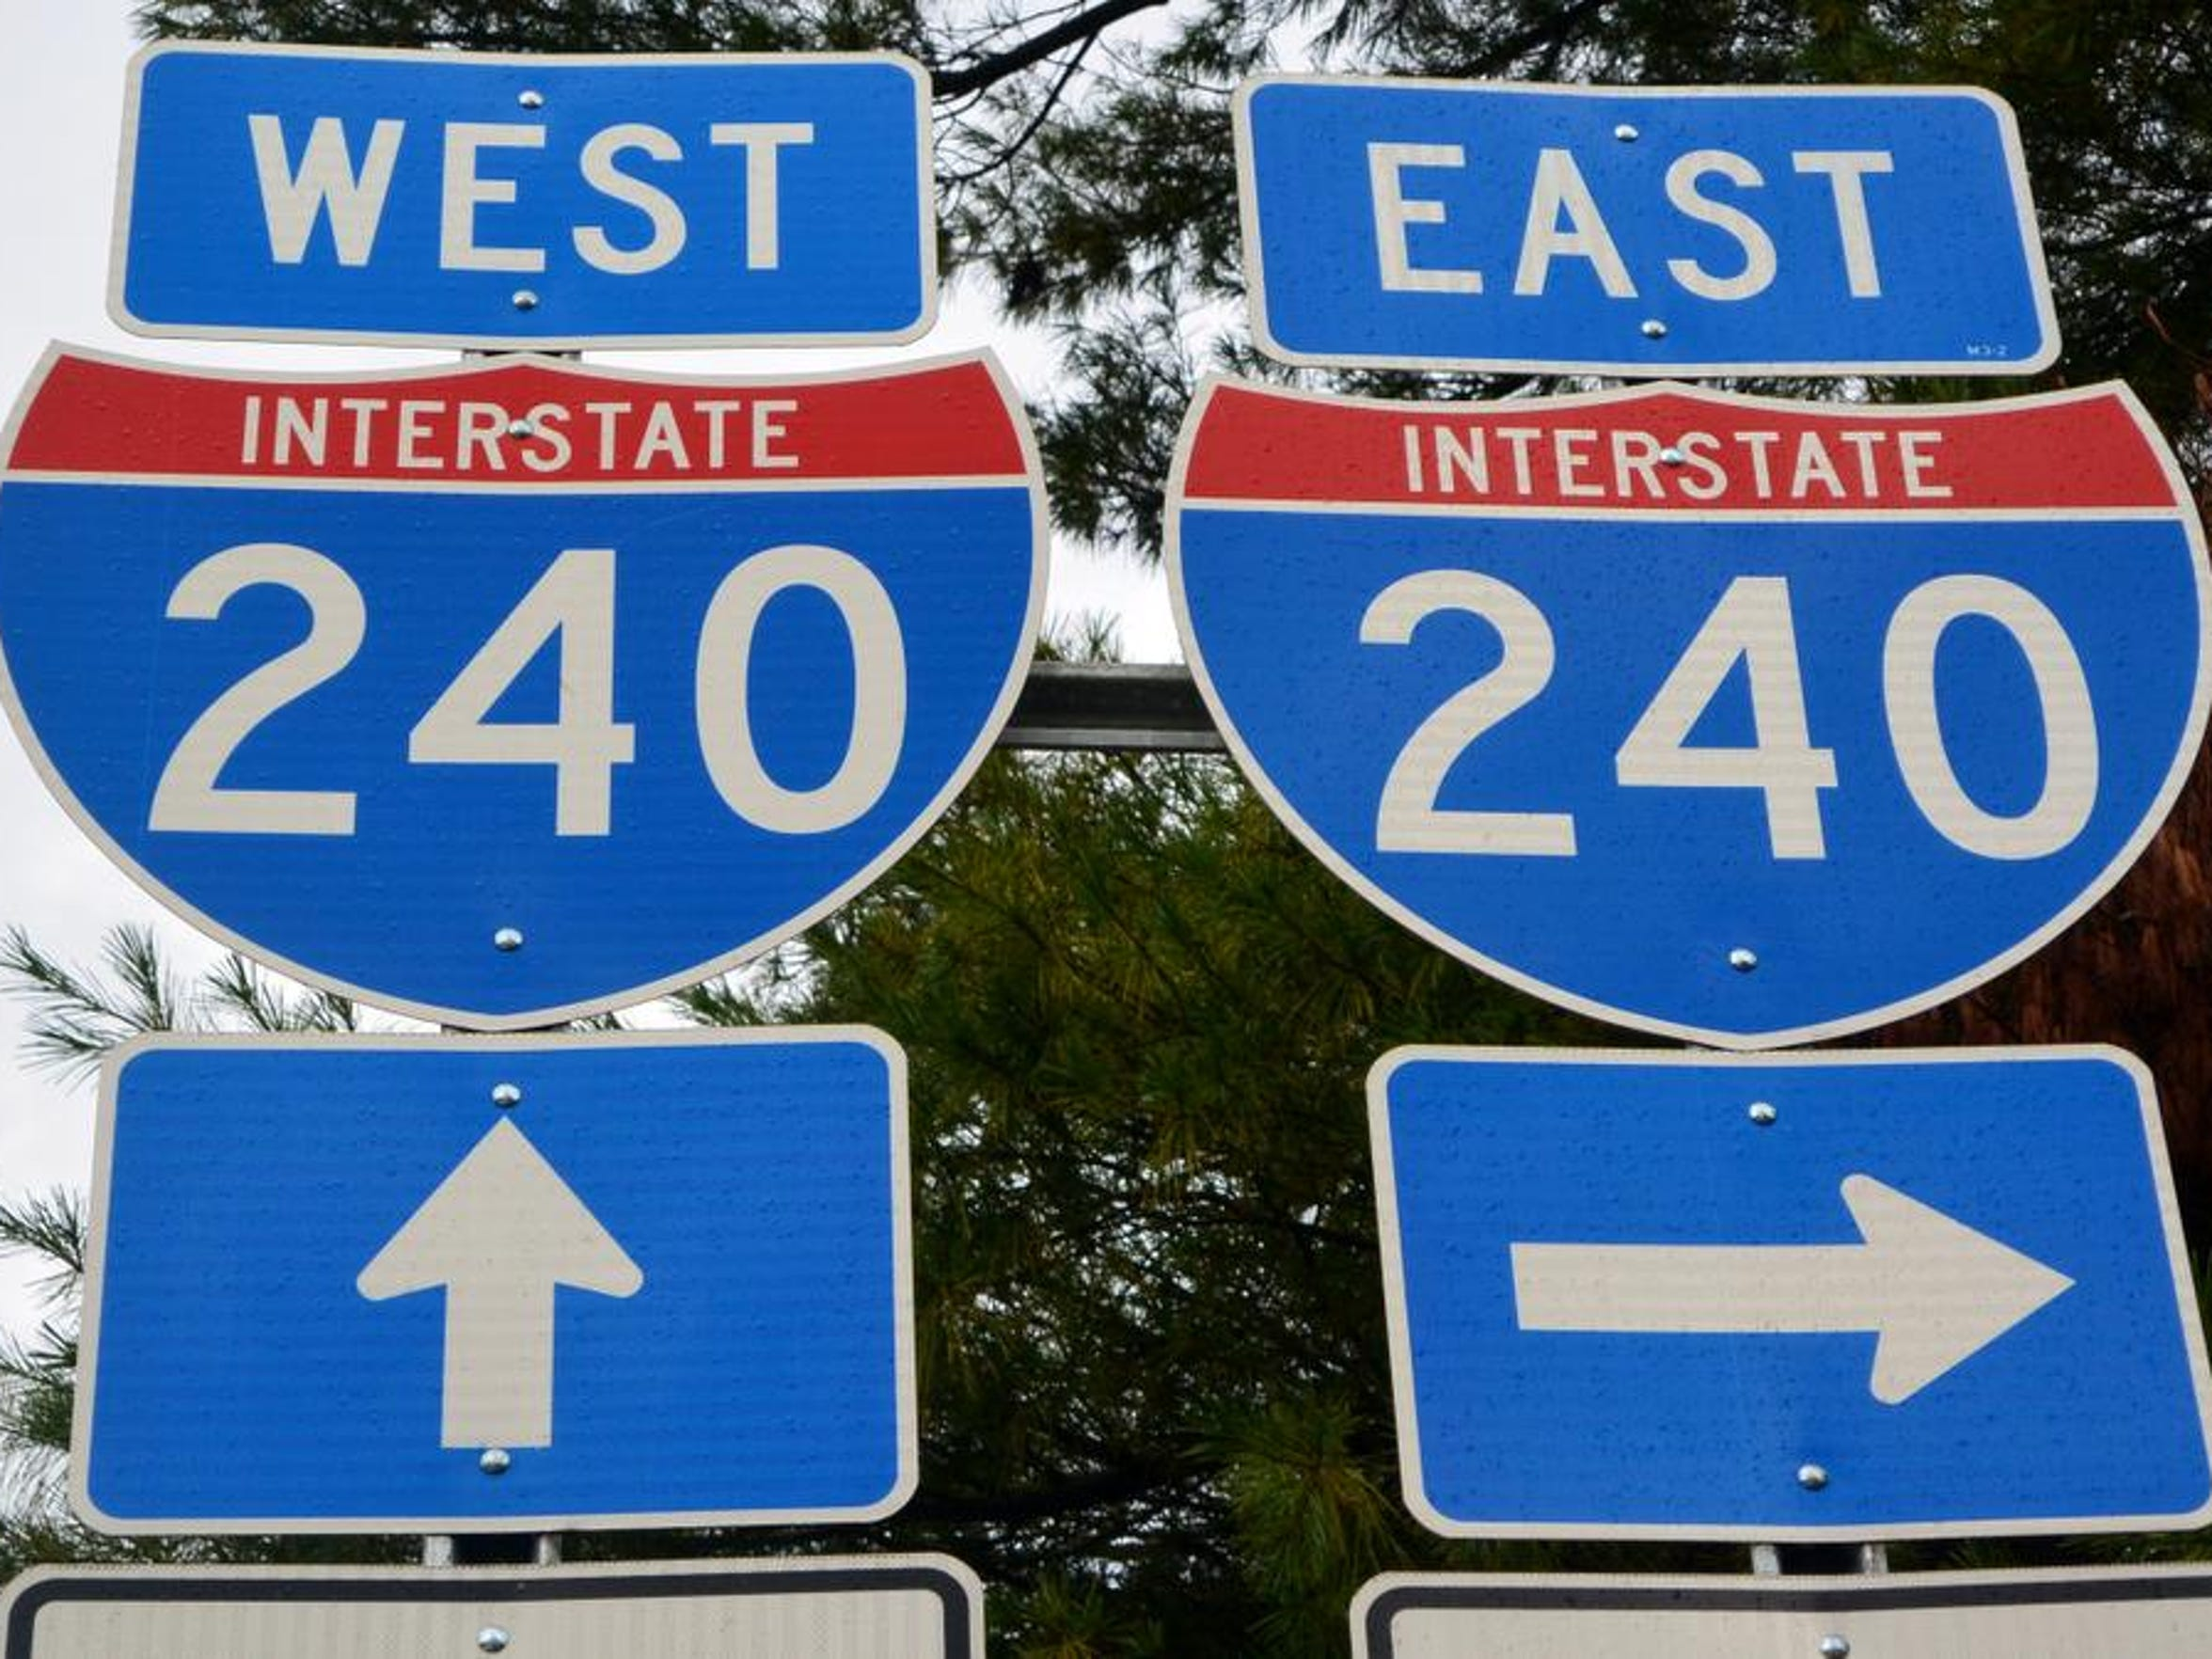 Interstate 240 is one of several area highways where